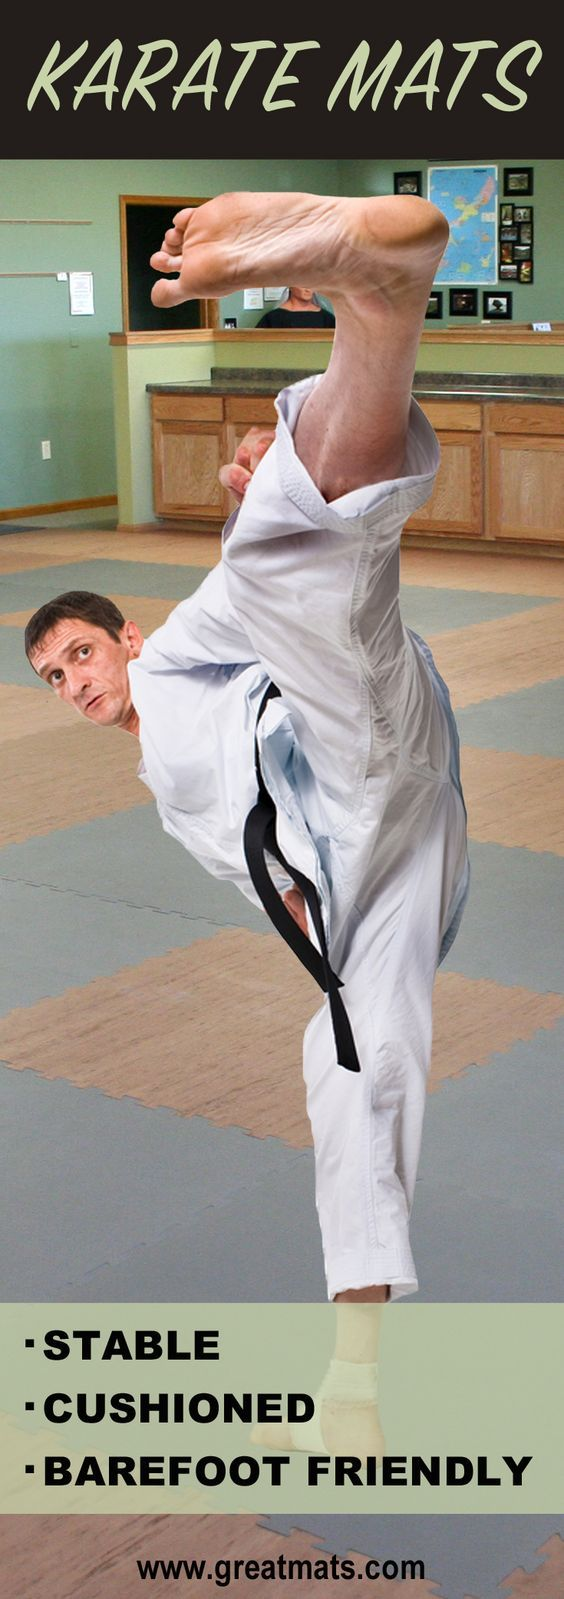 """Take a look at the best Karate Mats on the market - Greatmats 1"""" Thick Martial Arts Karate Mats!"""